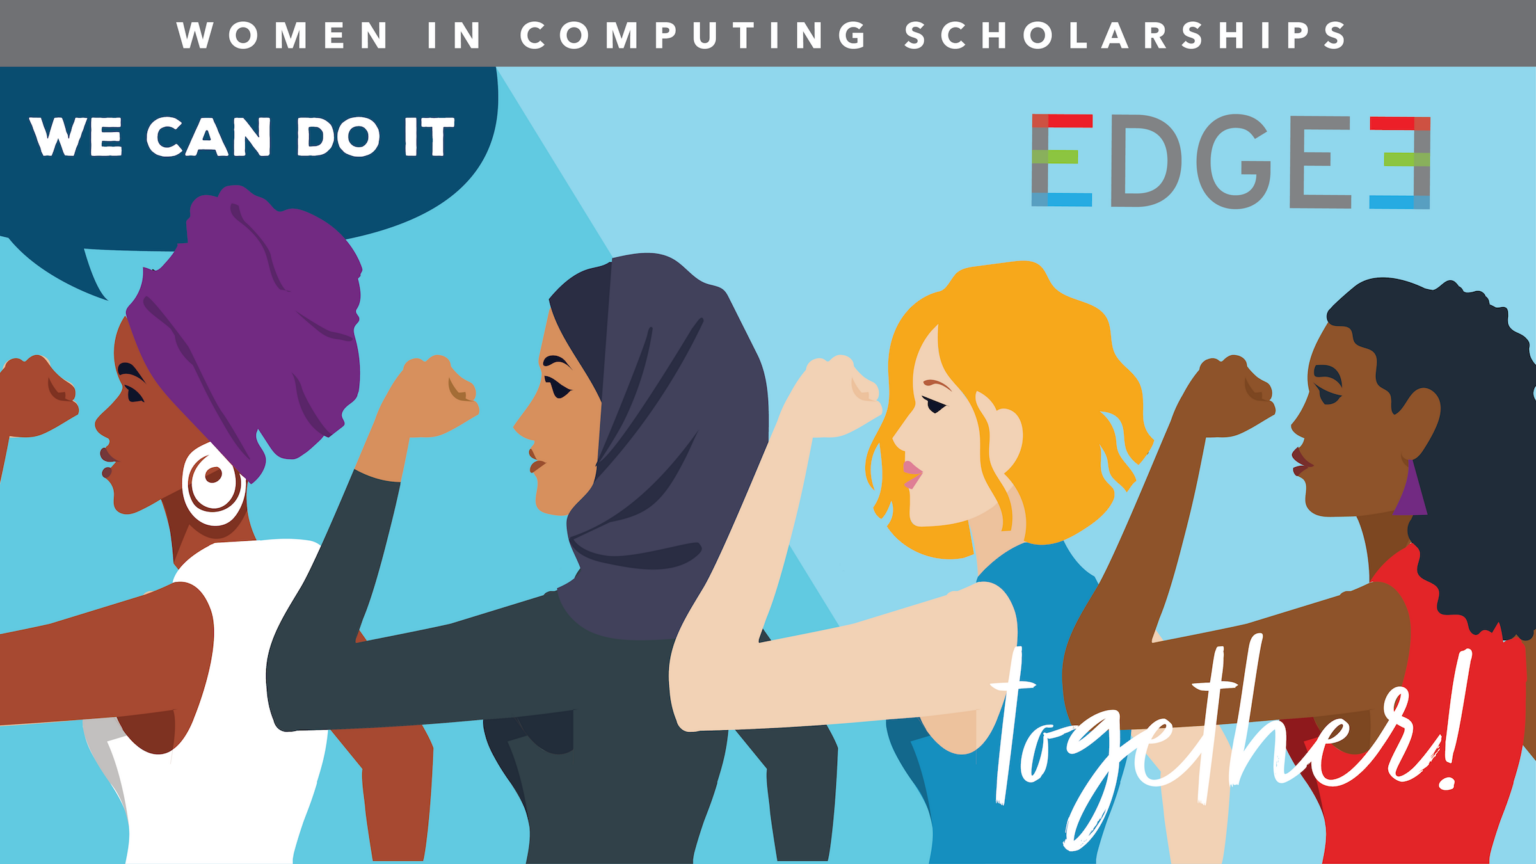 stylized graphic of four women of various ethnic backgrounds standing togther with fists raised, promoting the EDGE3 scholarhips